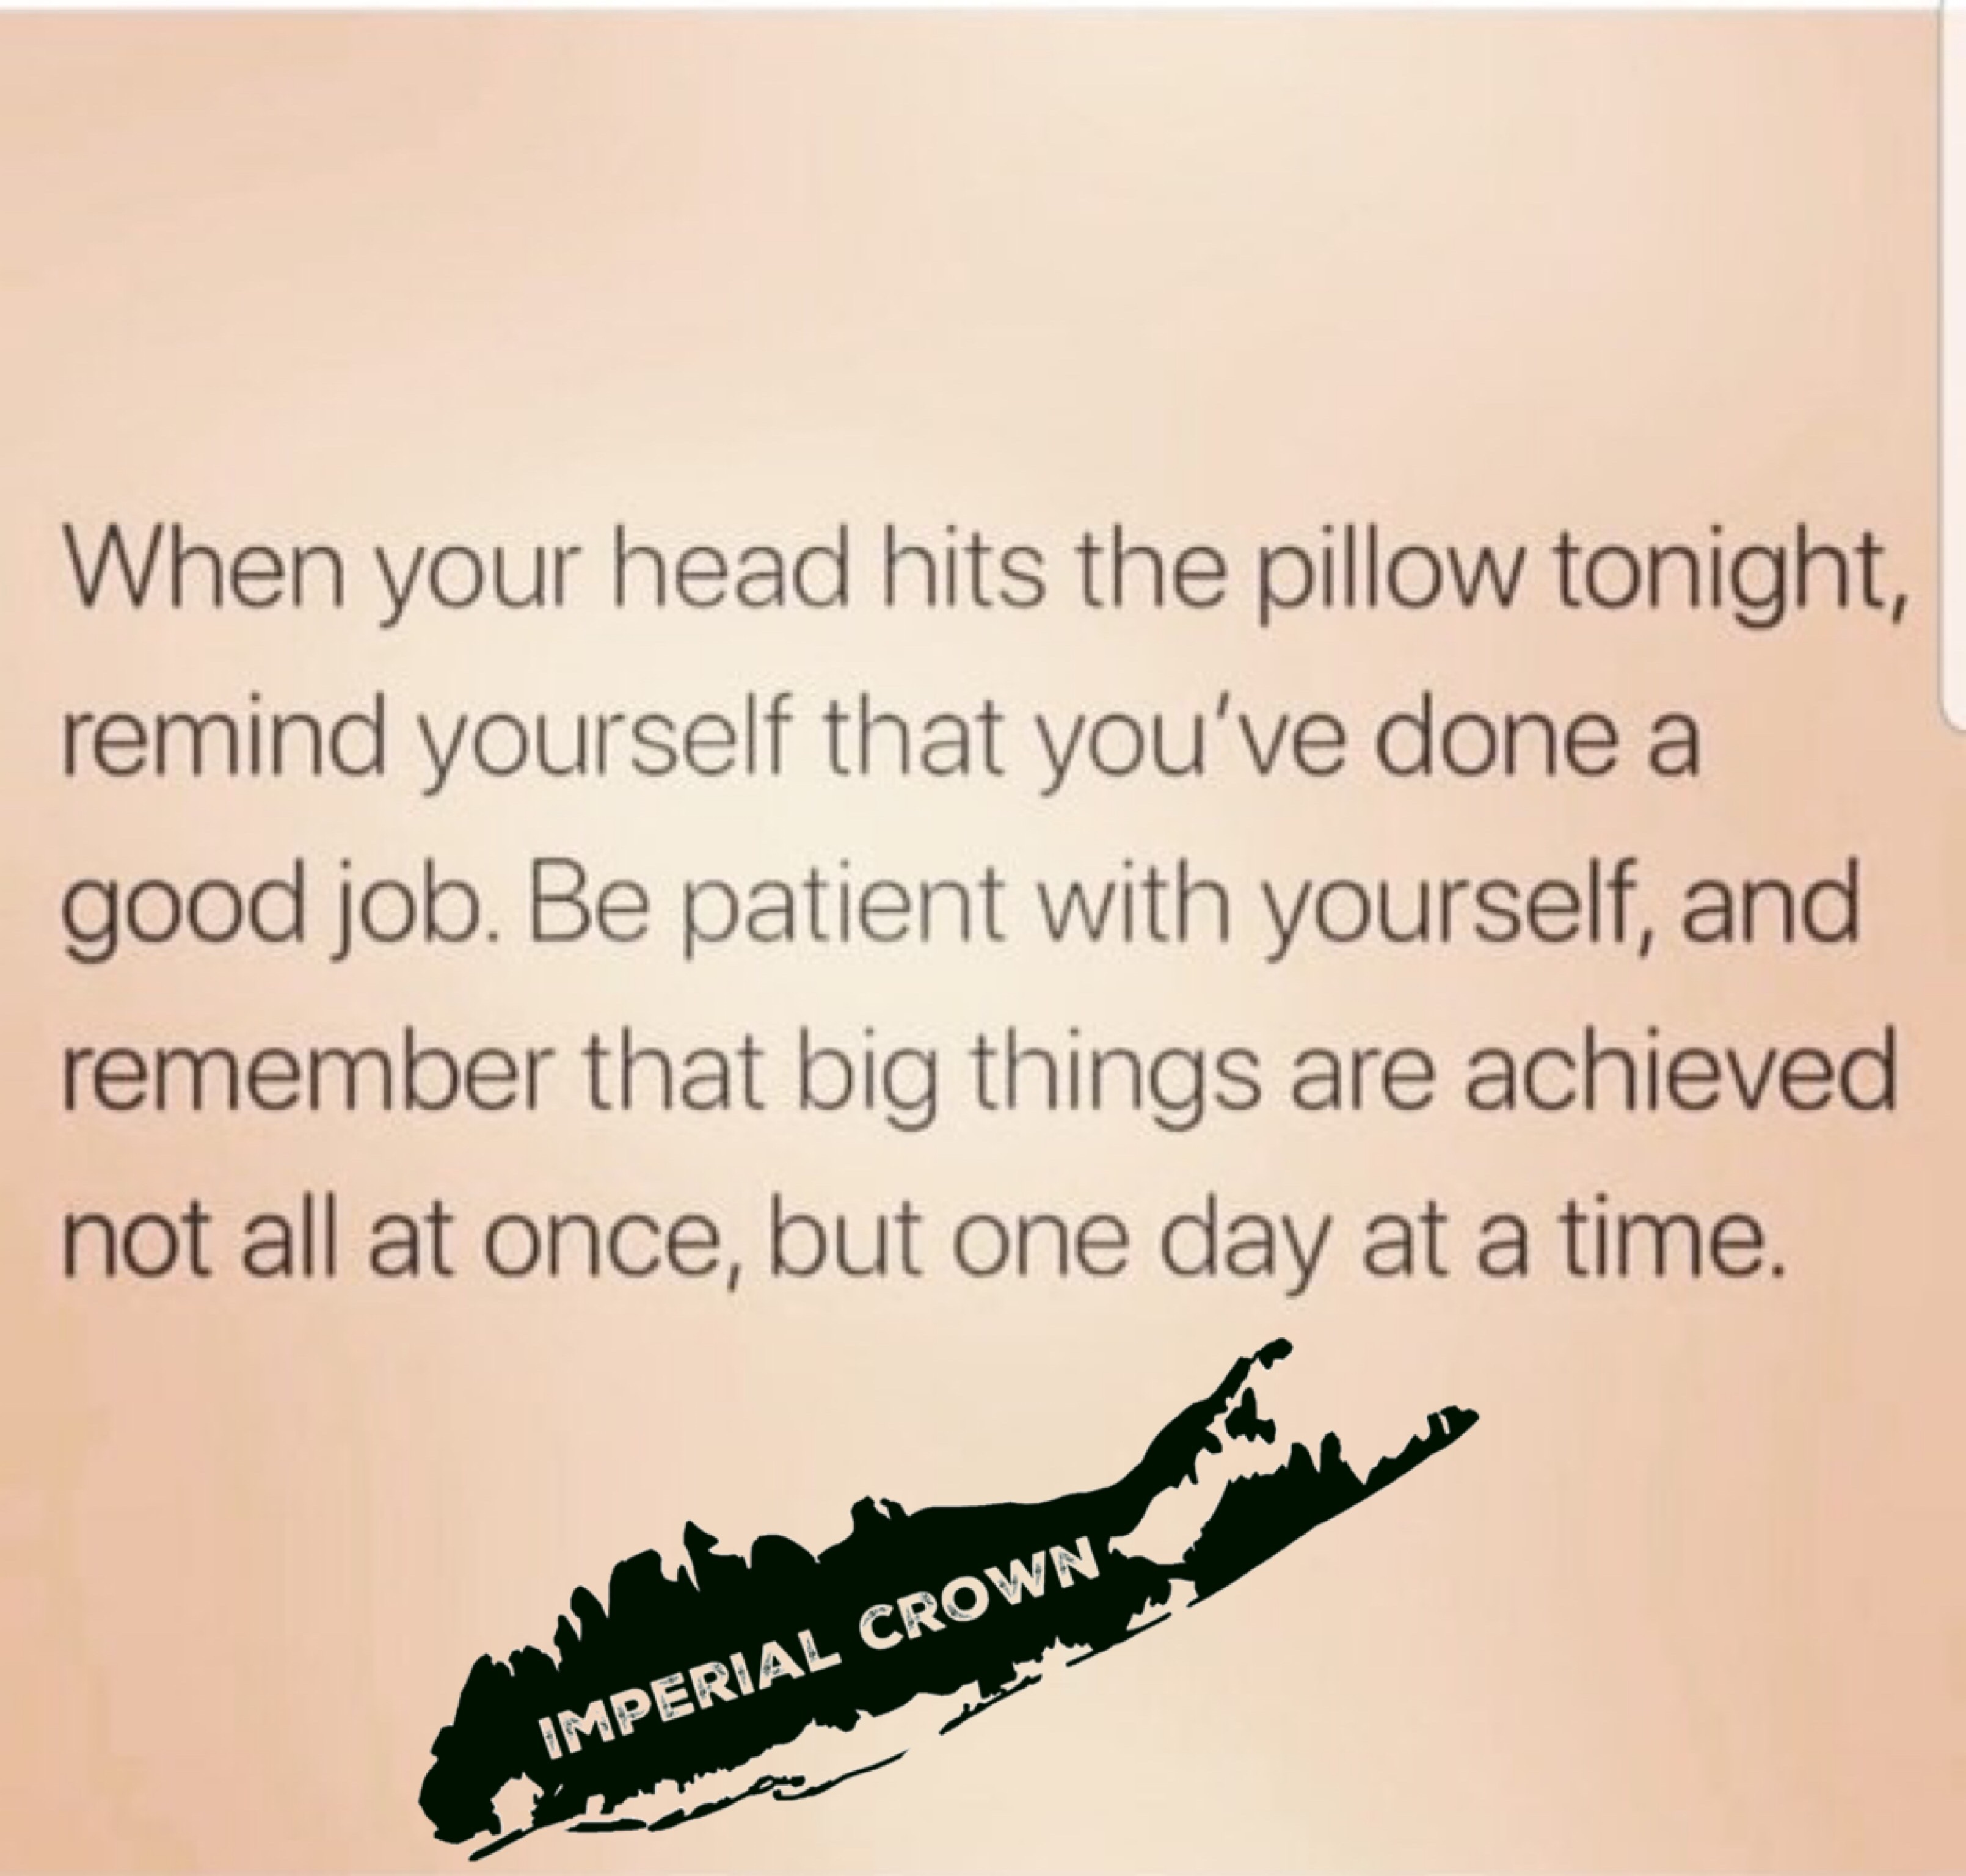 When your head hits the pillow tonight remind yourself that you've done a good job